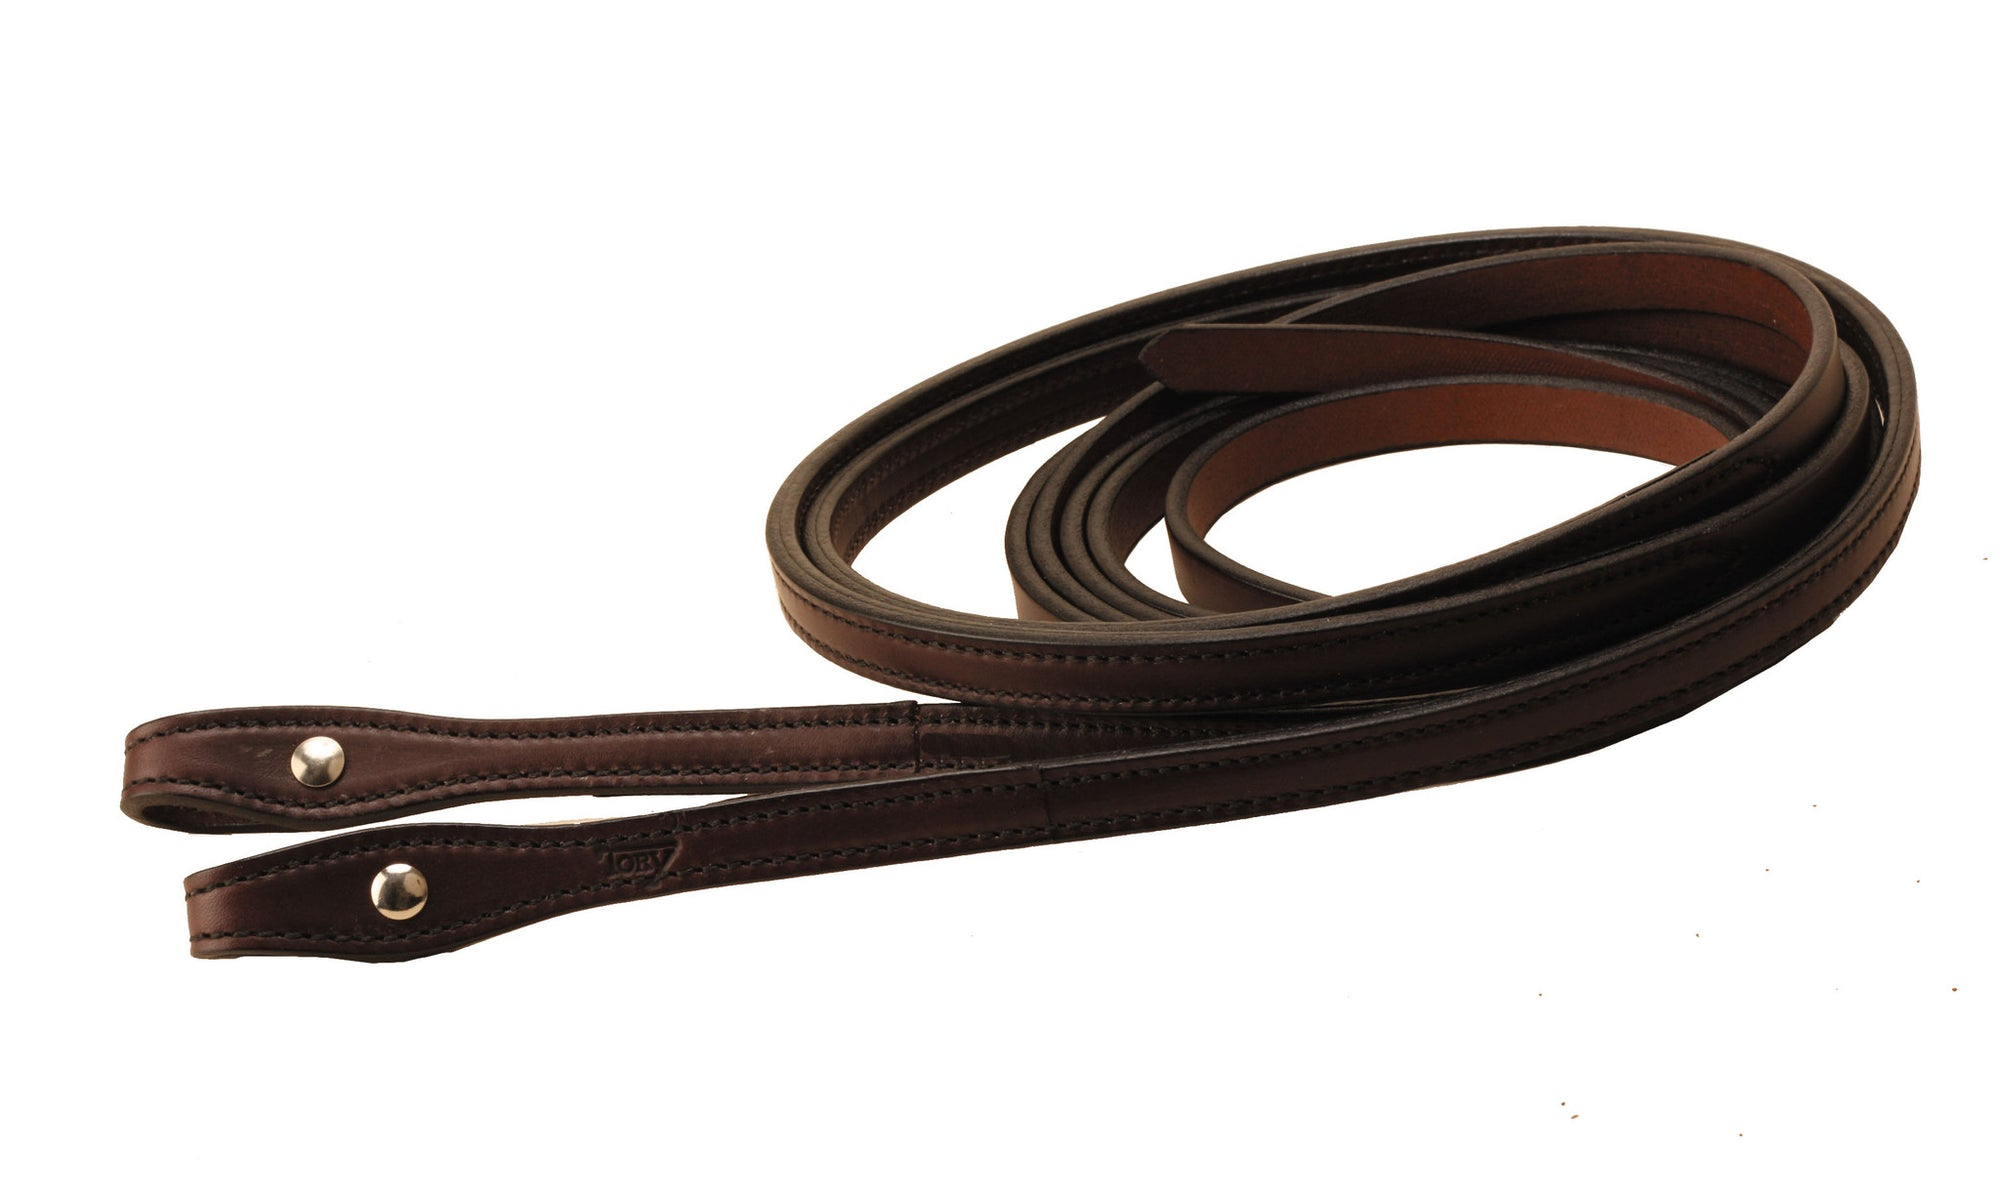 Tory Leather Split Bridle Leather Reins